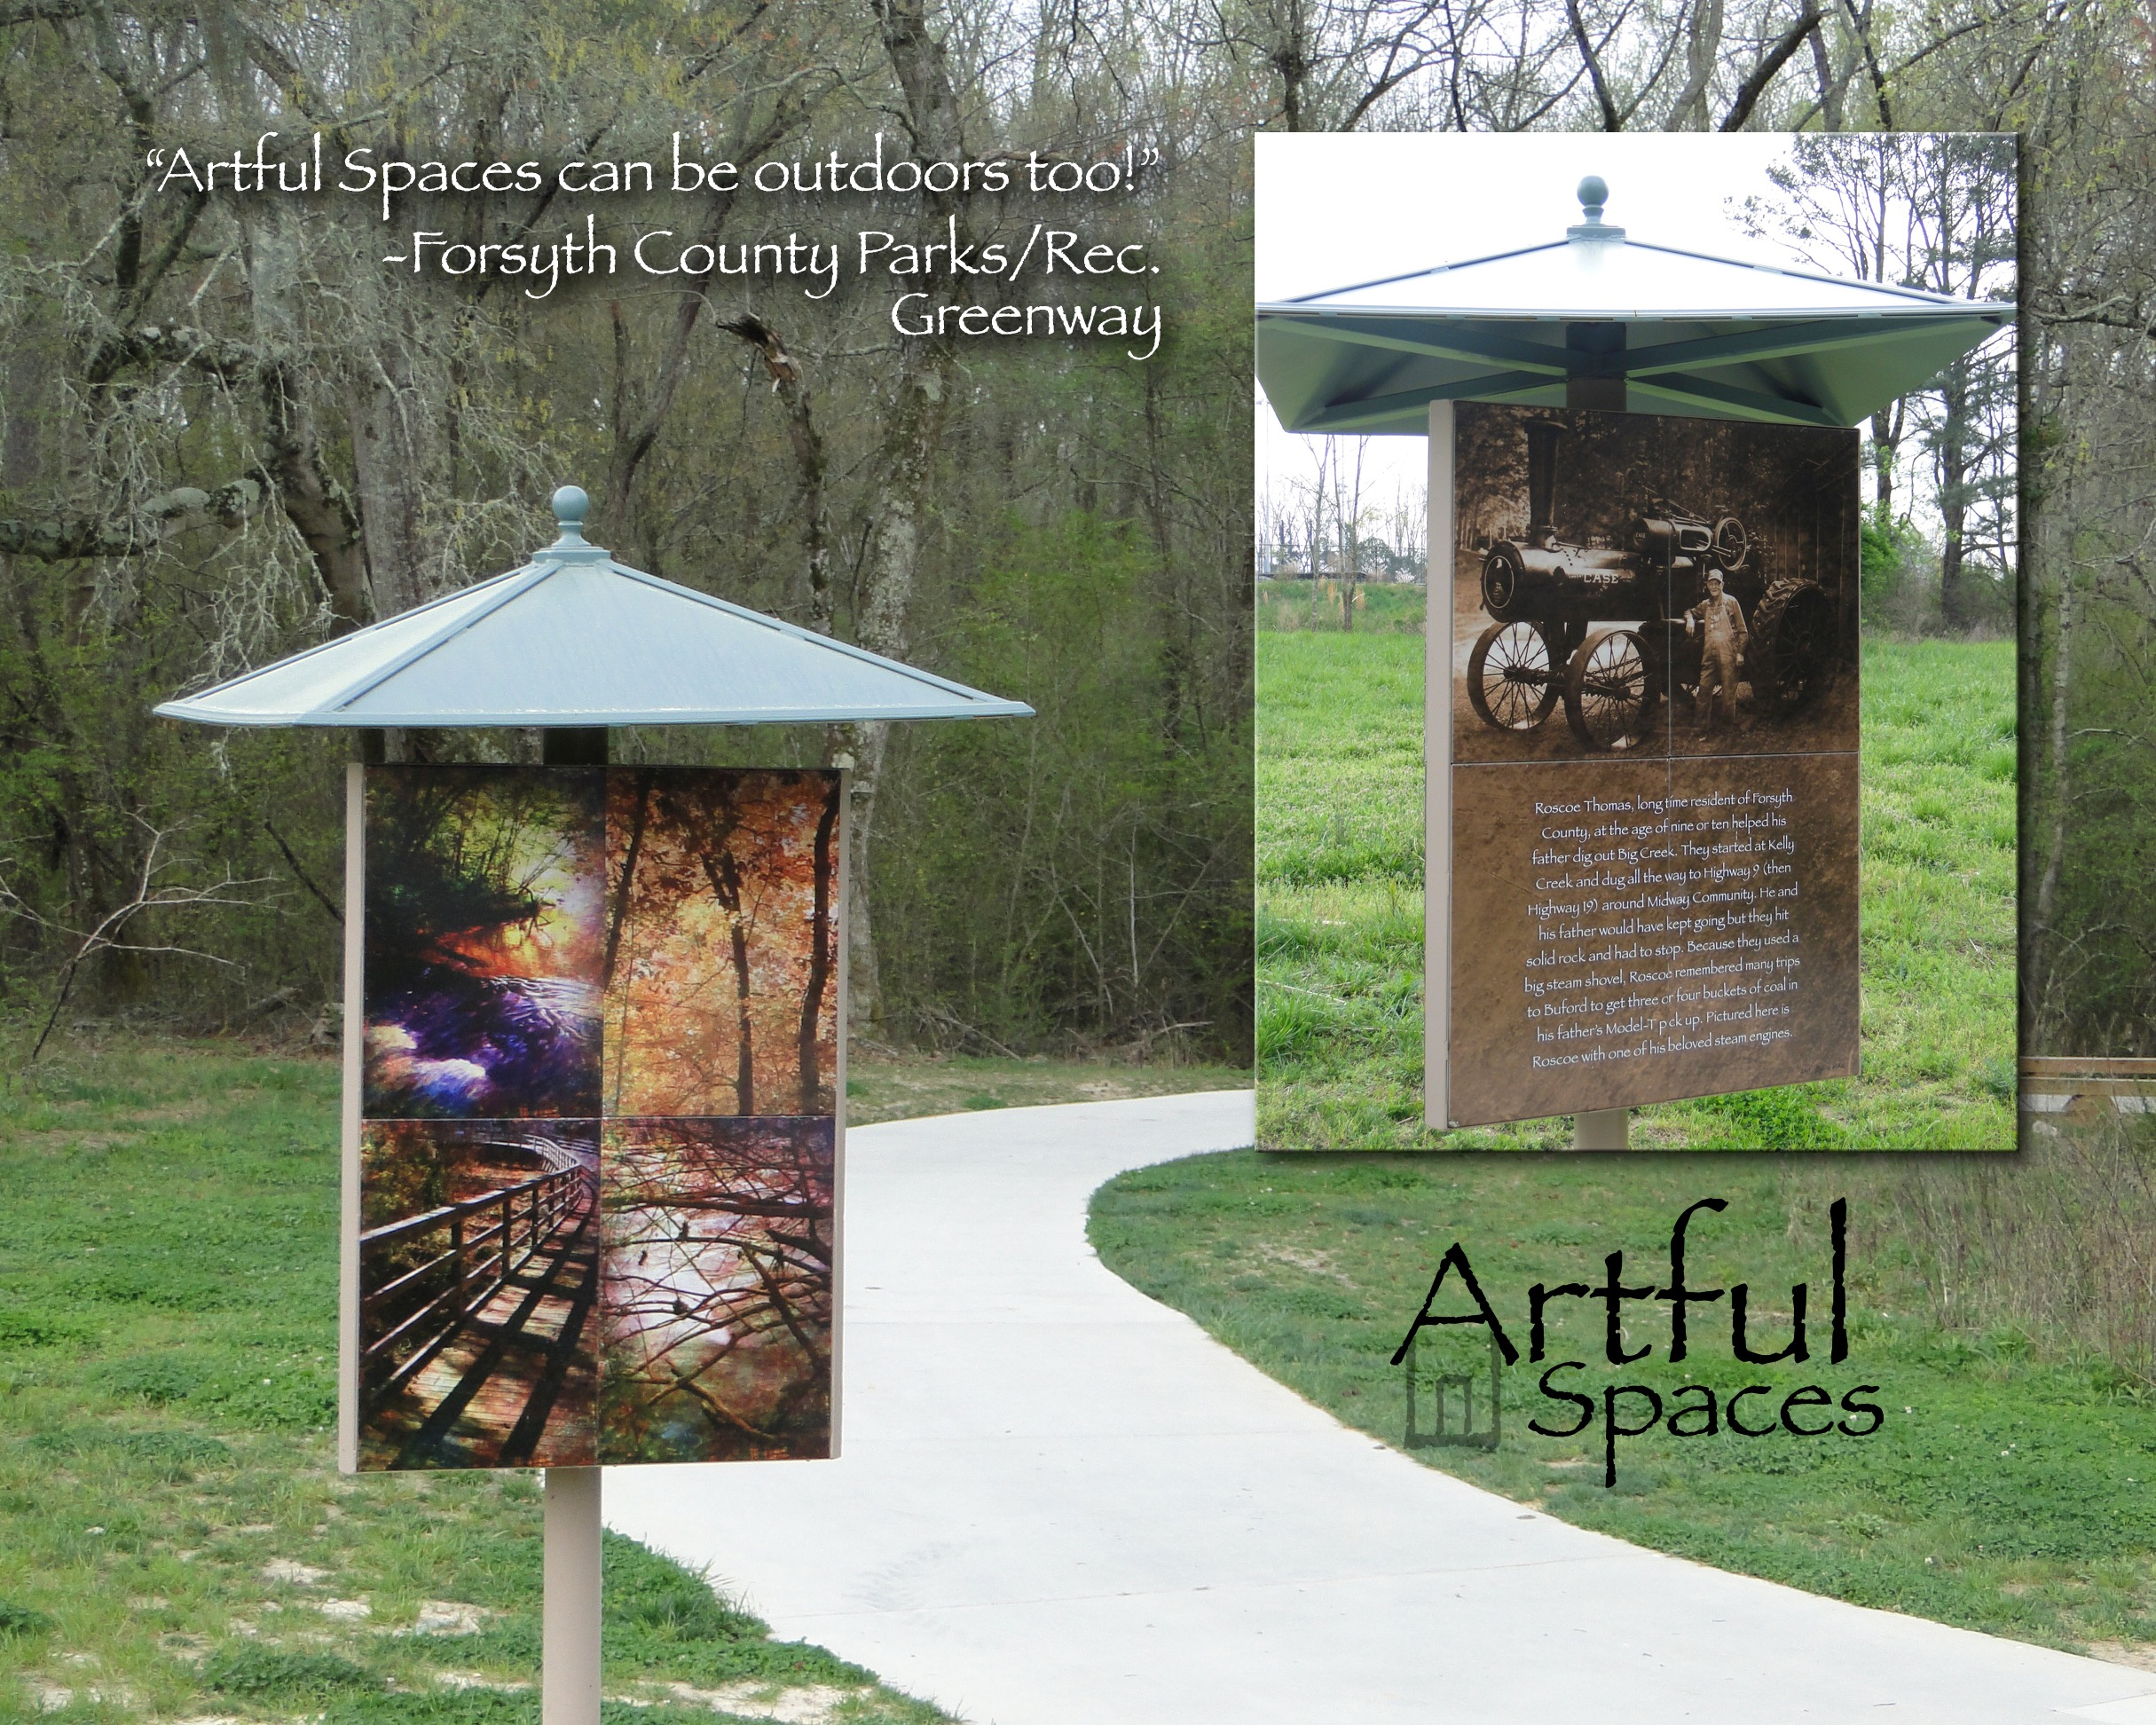 Big Creek Greenway - Our ability to provide art for outdoor spaces helps us reach a range of communities and demographics. The Forsyth County Parks & Recreation Department is one such group. They needed meaningful artwork that could be used on a shelter for the Big Creek Greenway. The triangular structure had space for three separate pieces, allowing Bryan to create works to promote the history of the area and the unique beauty of the surrounding wetlands. In addition to the trail side shelter, Bryan designed an art piece displaying the area's census names from 1900 superimposed over wetland images.